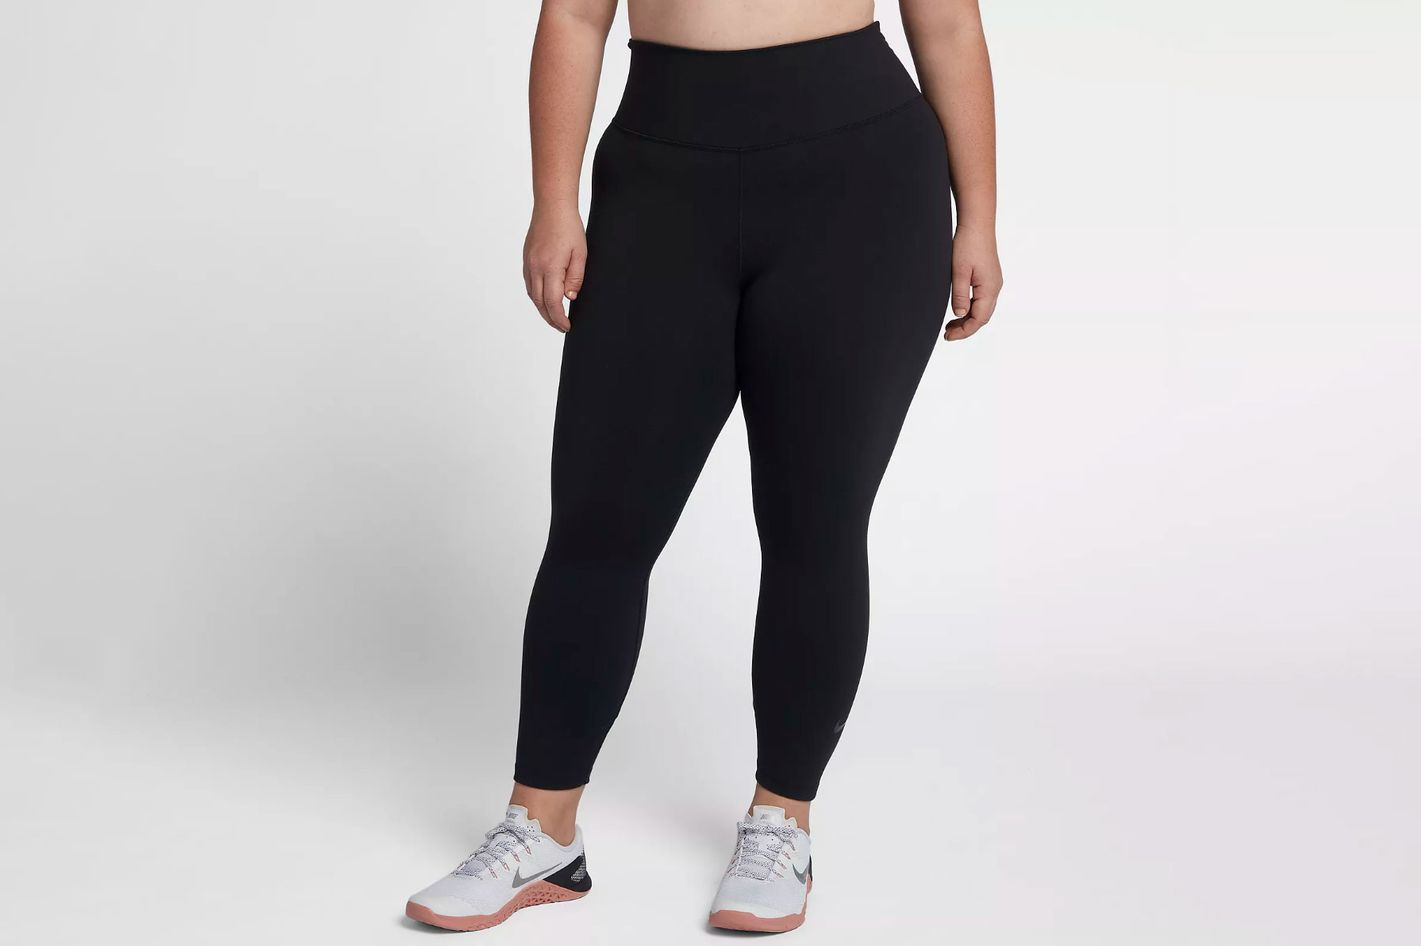 7b6610daa73b0 Nike Power Sculpt Women's High-Rise Training Tights